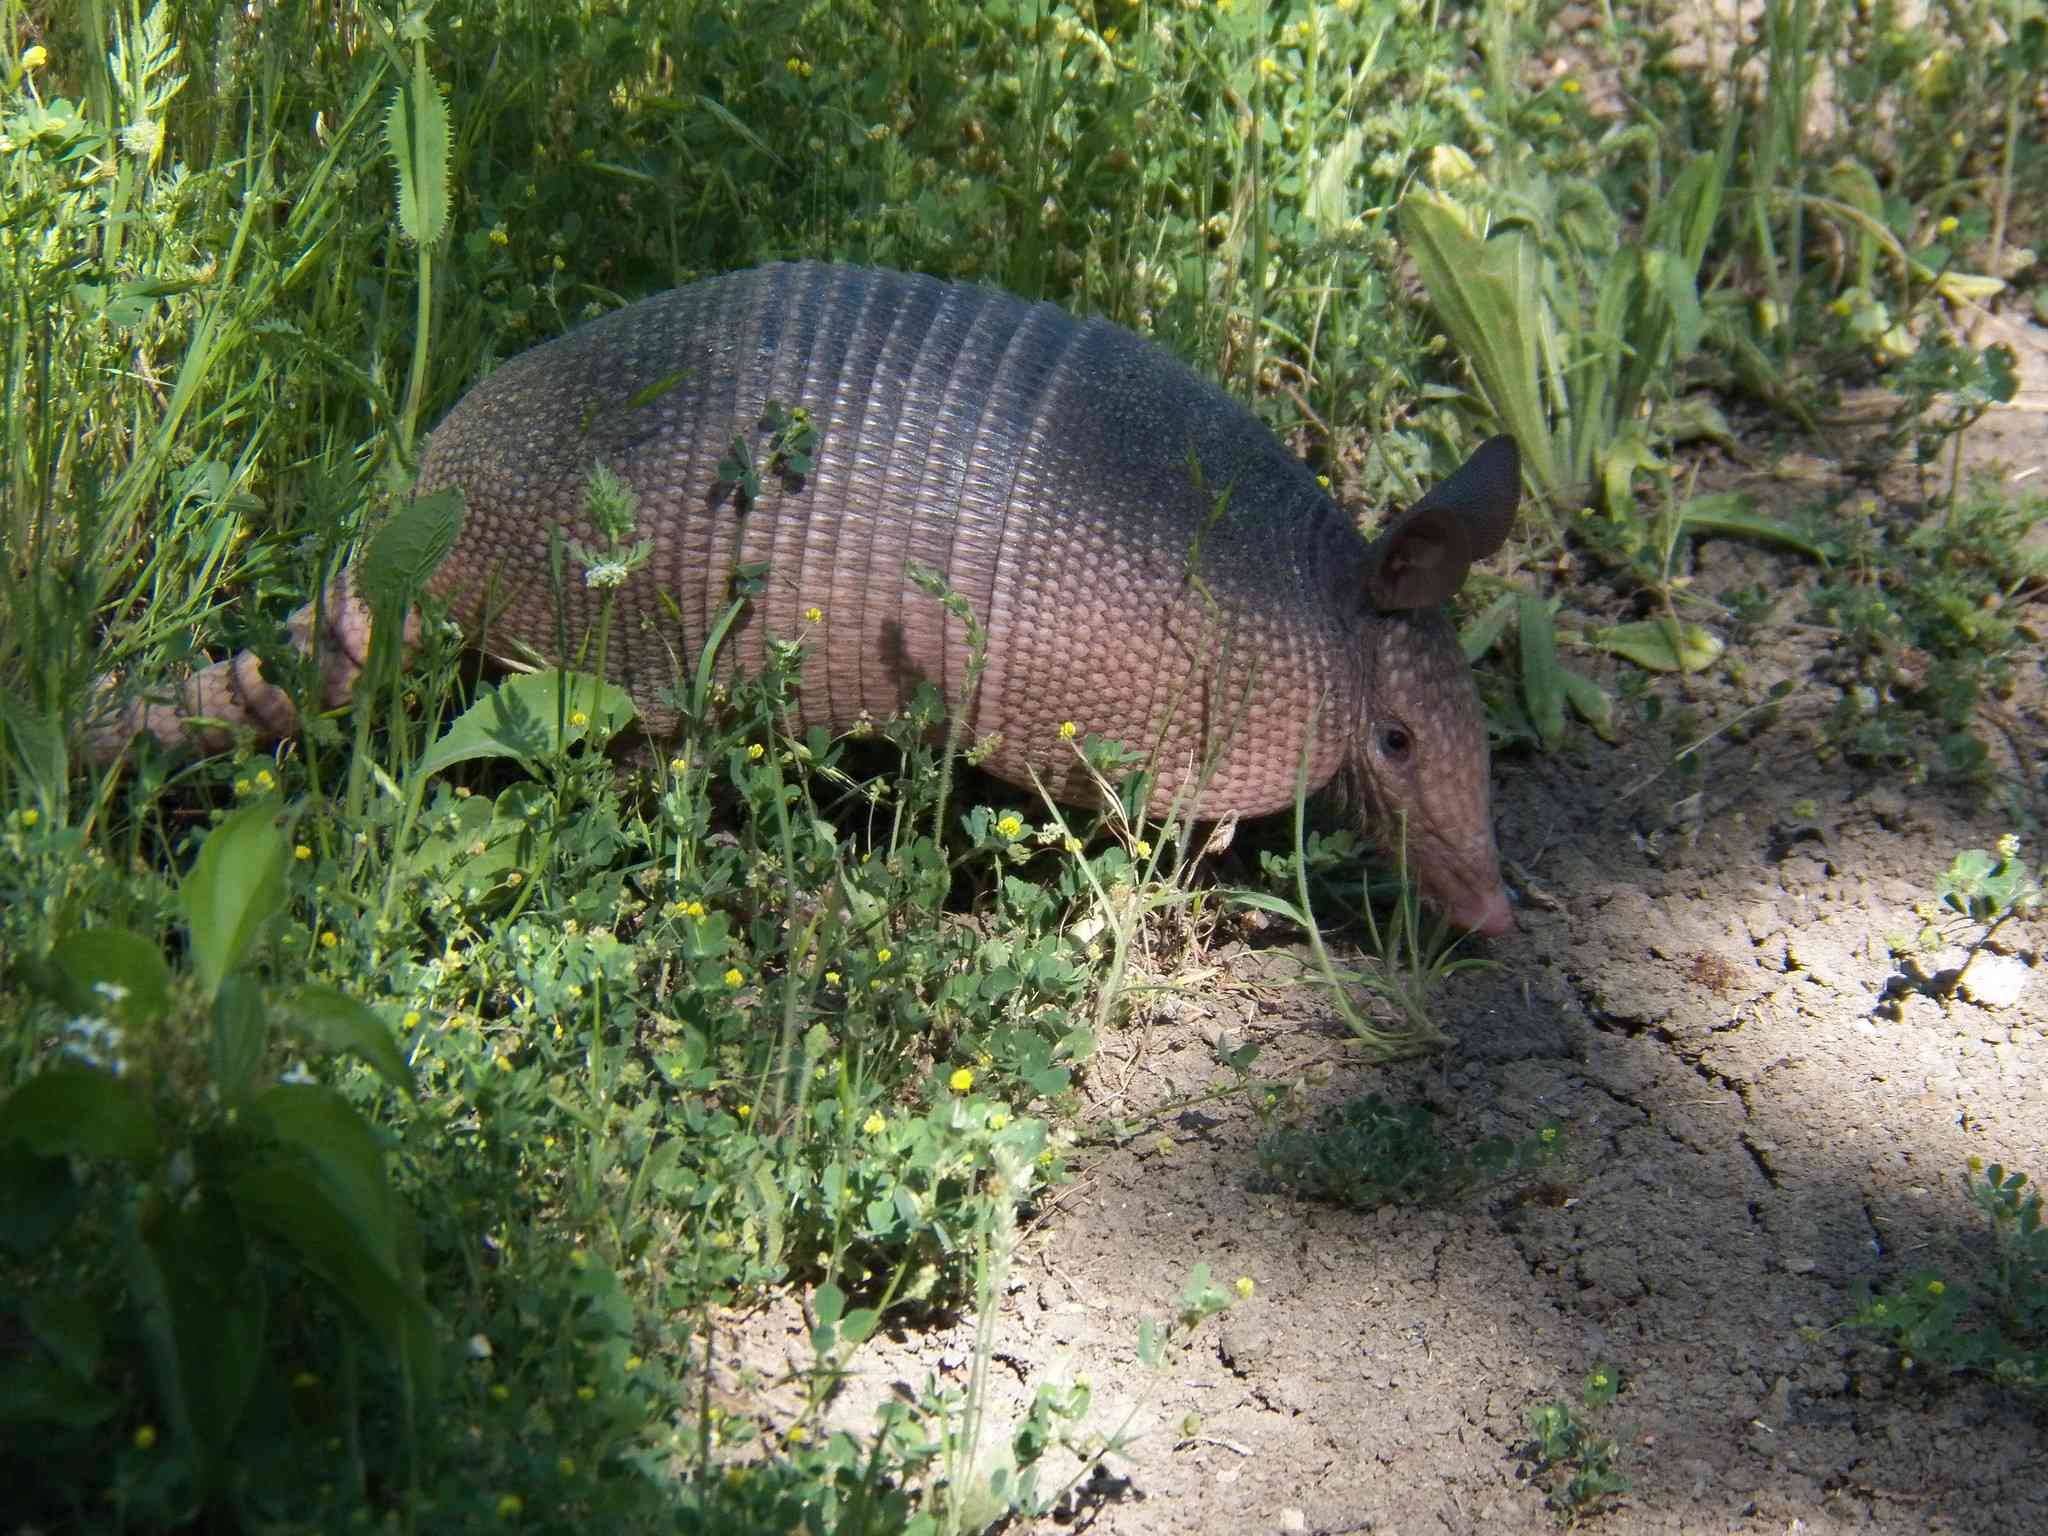 Nine-banded armadillo in green scrub on the side of a path